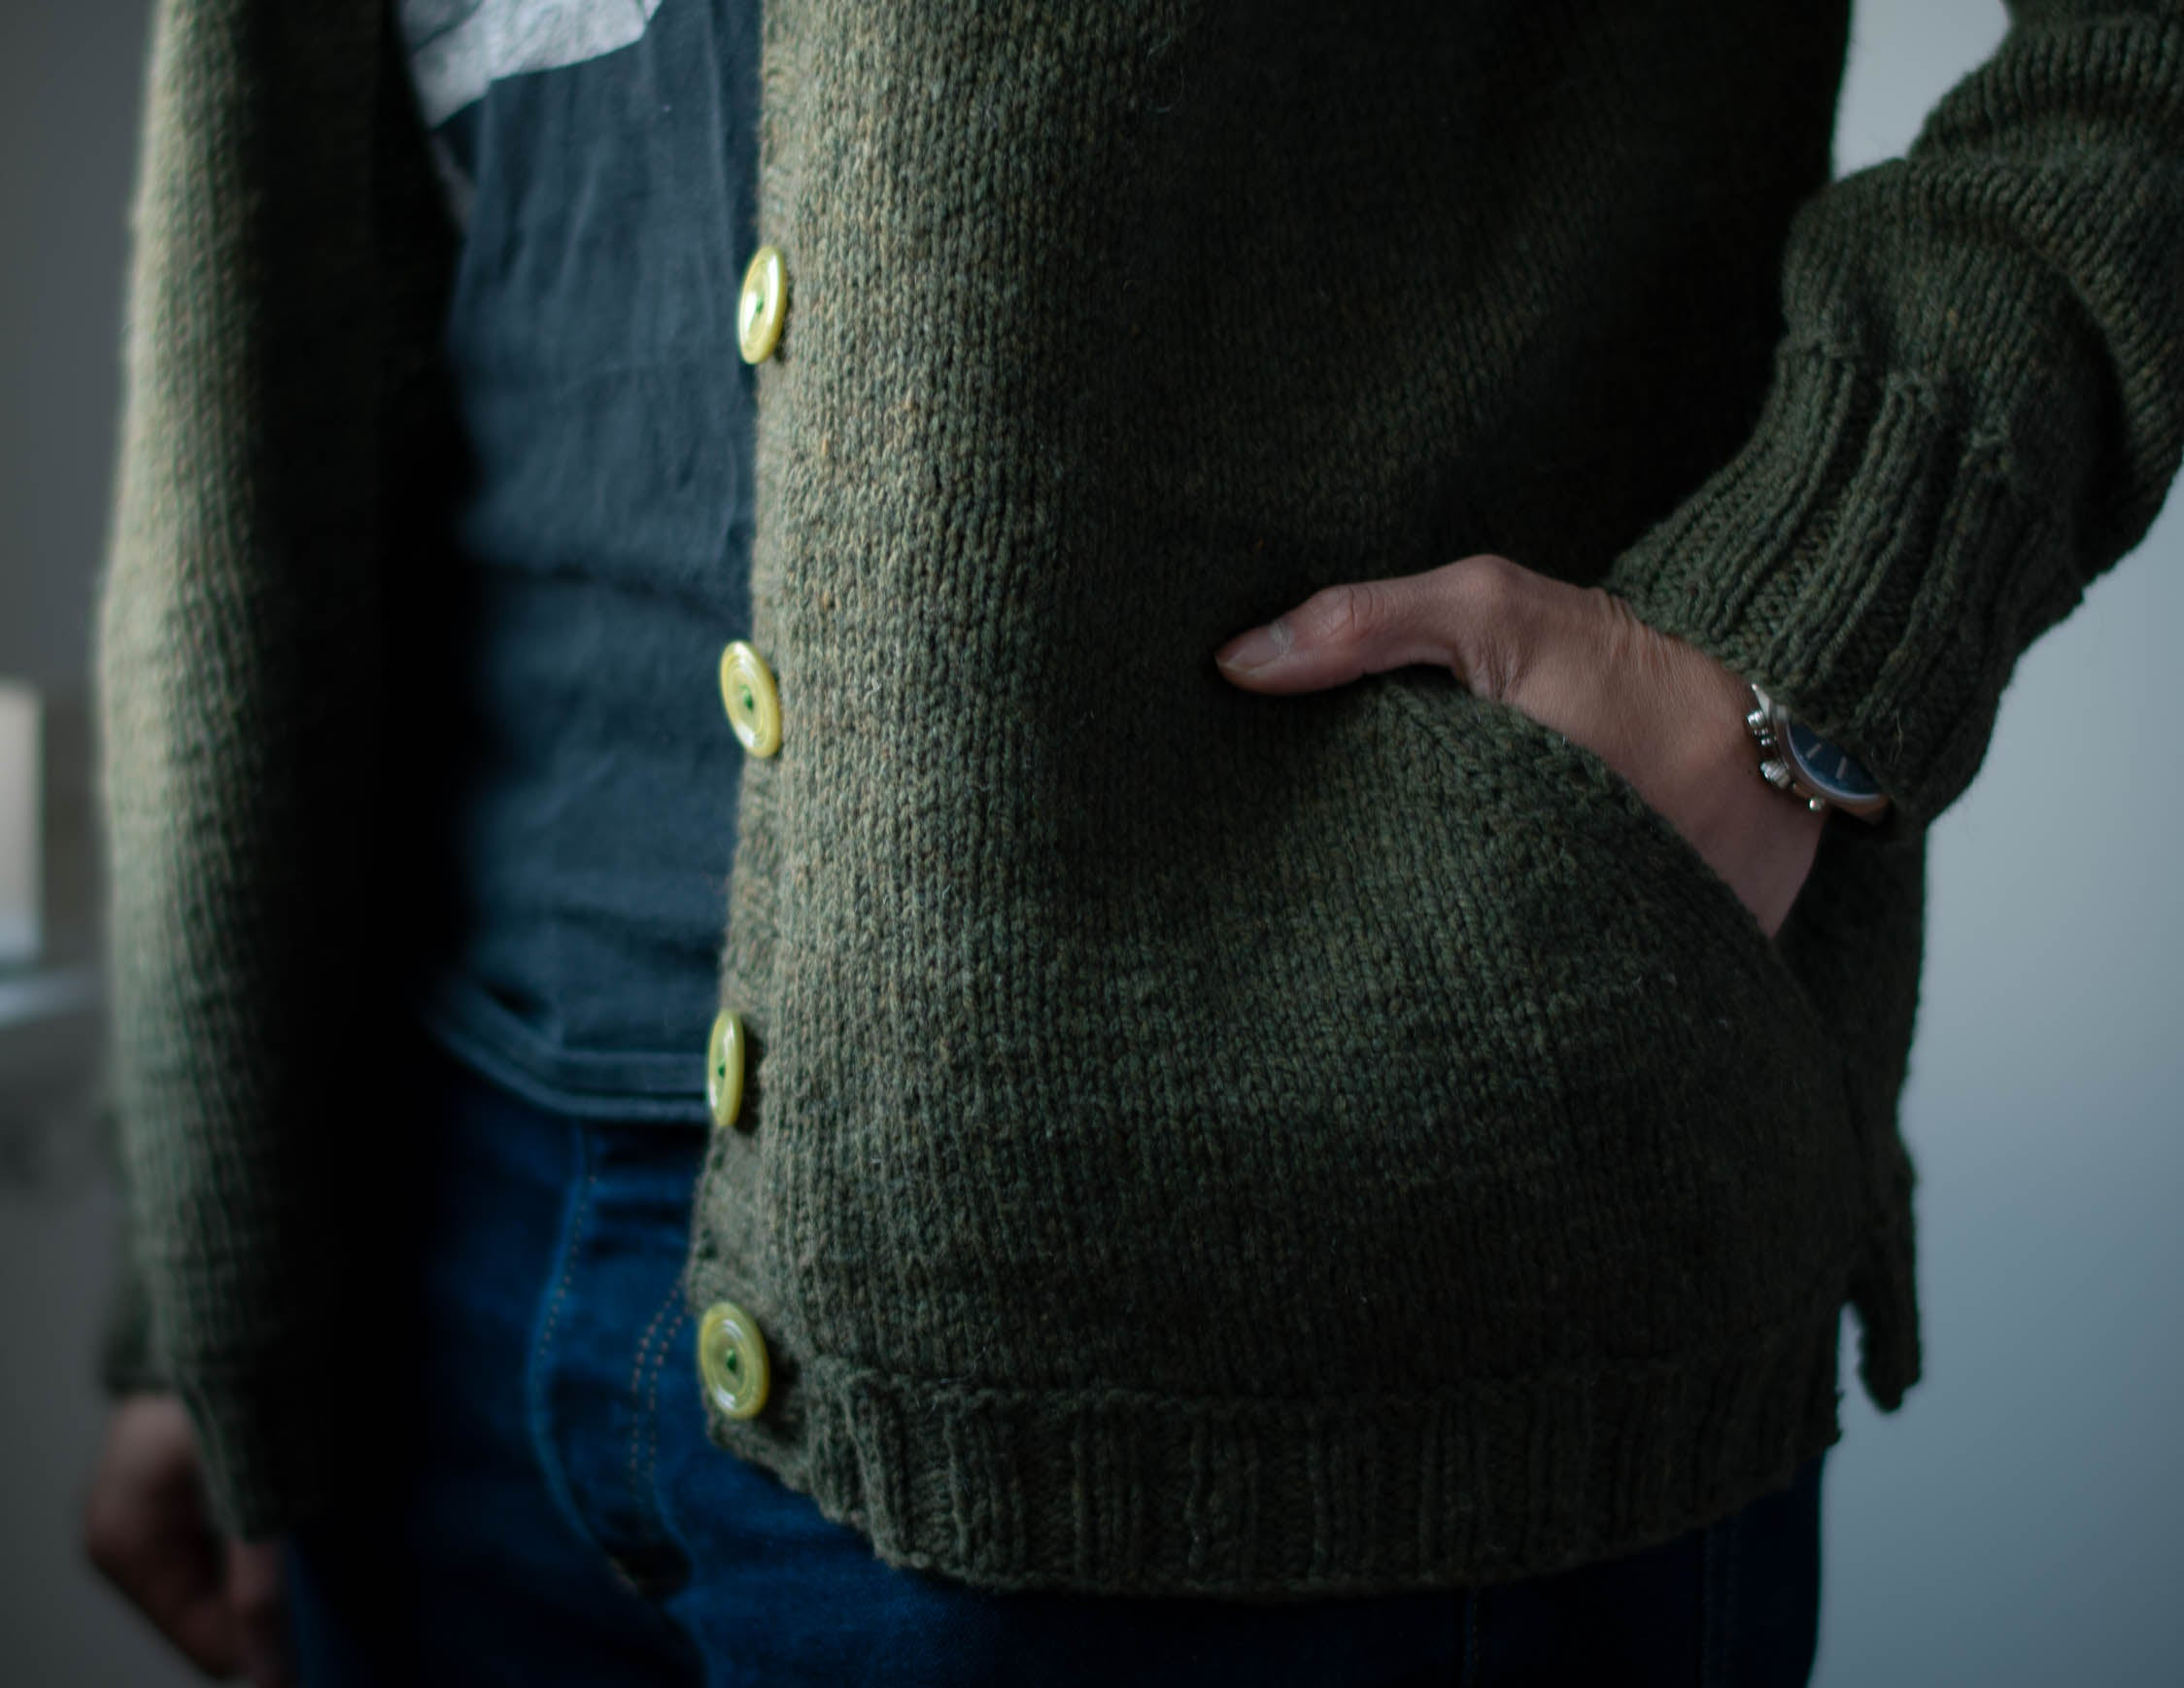 Image of a person wearing an unbuttoned green cardigan, with a brown-skinned hand tucked into the angled pocket.